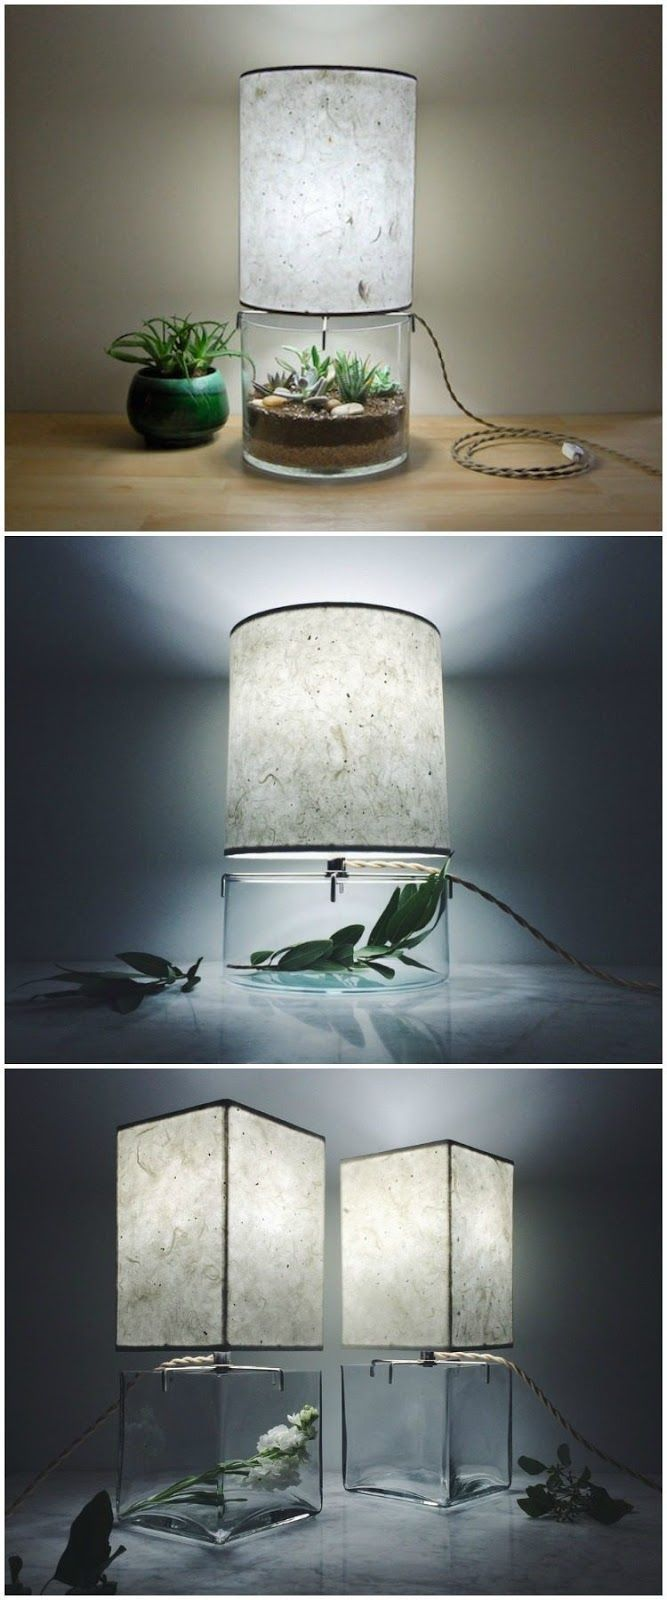 100 Incredible DIY Terrarium Ideas for Indoor Gardening to Make Your Neighbors Jealous – Page 3 – DIY.Buzzkee.com